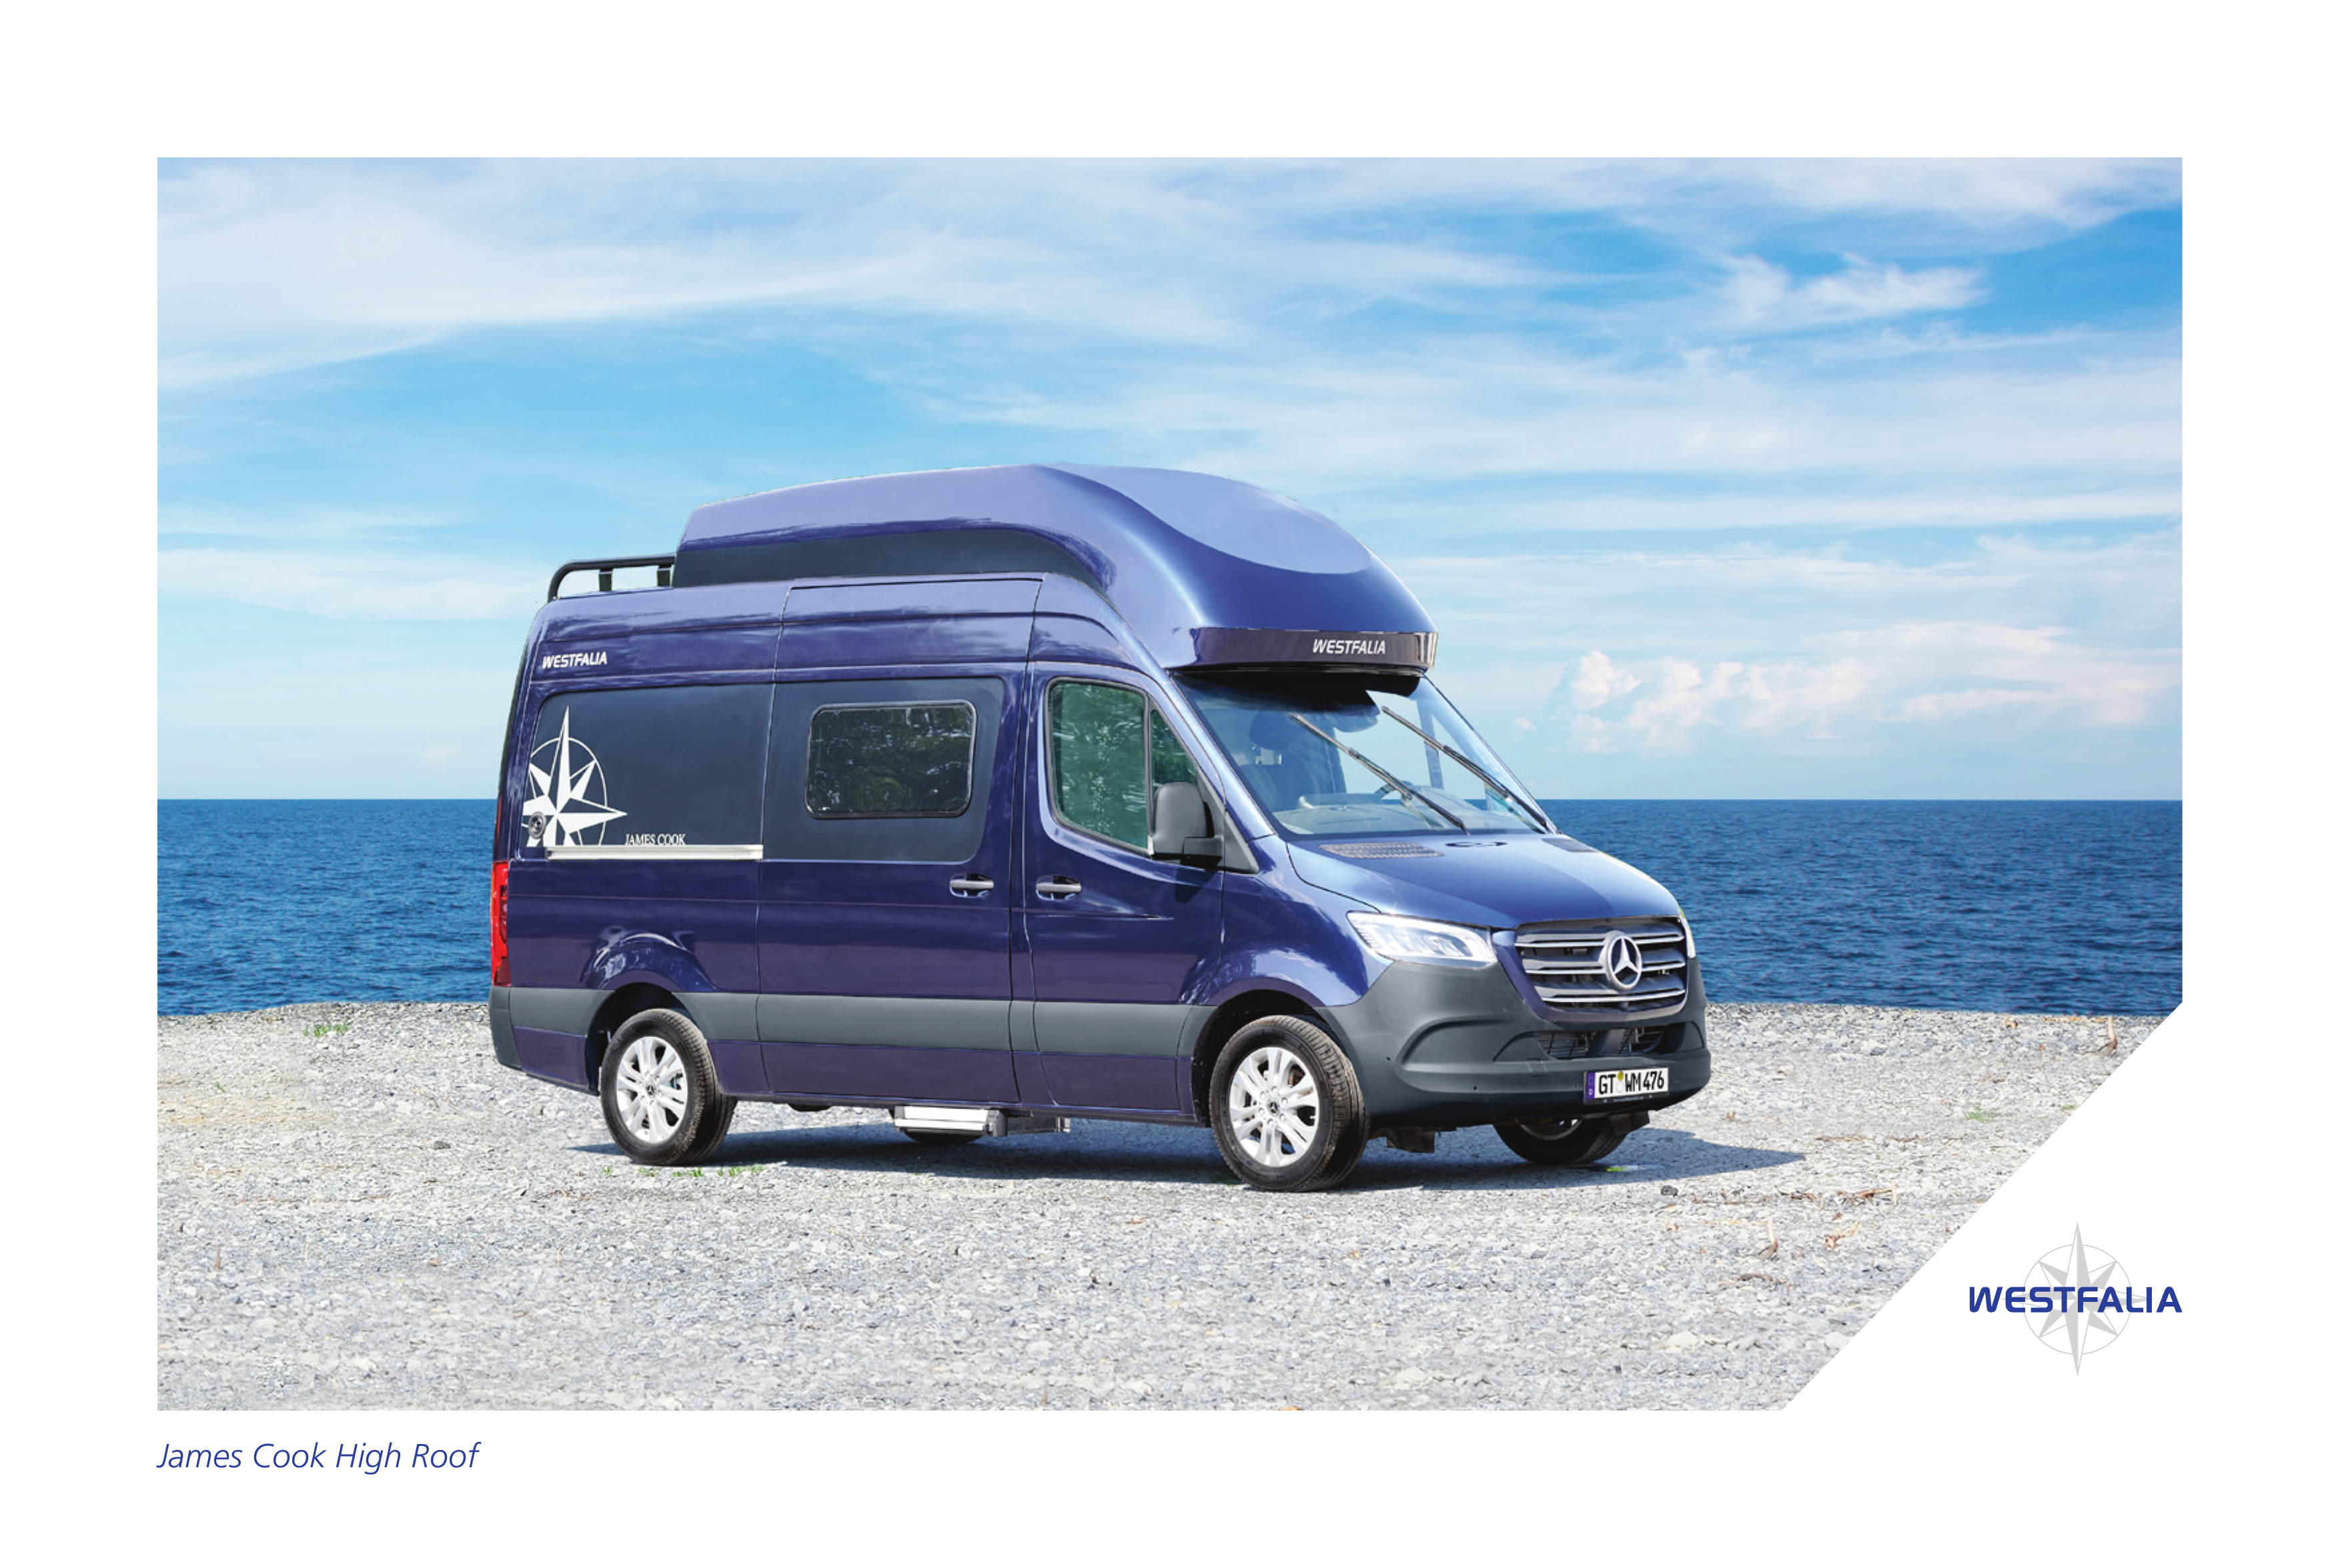 2020 Westfalia James Cook Brochure